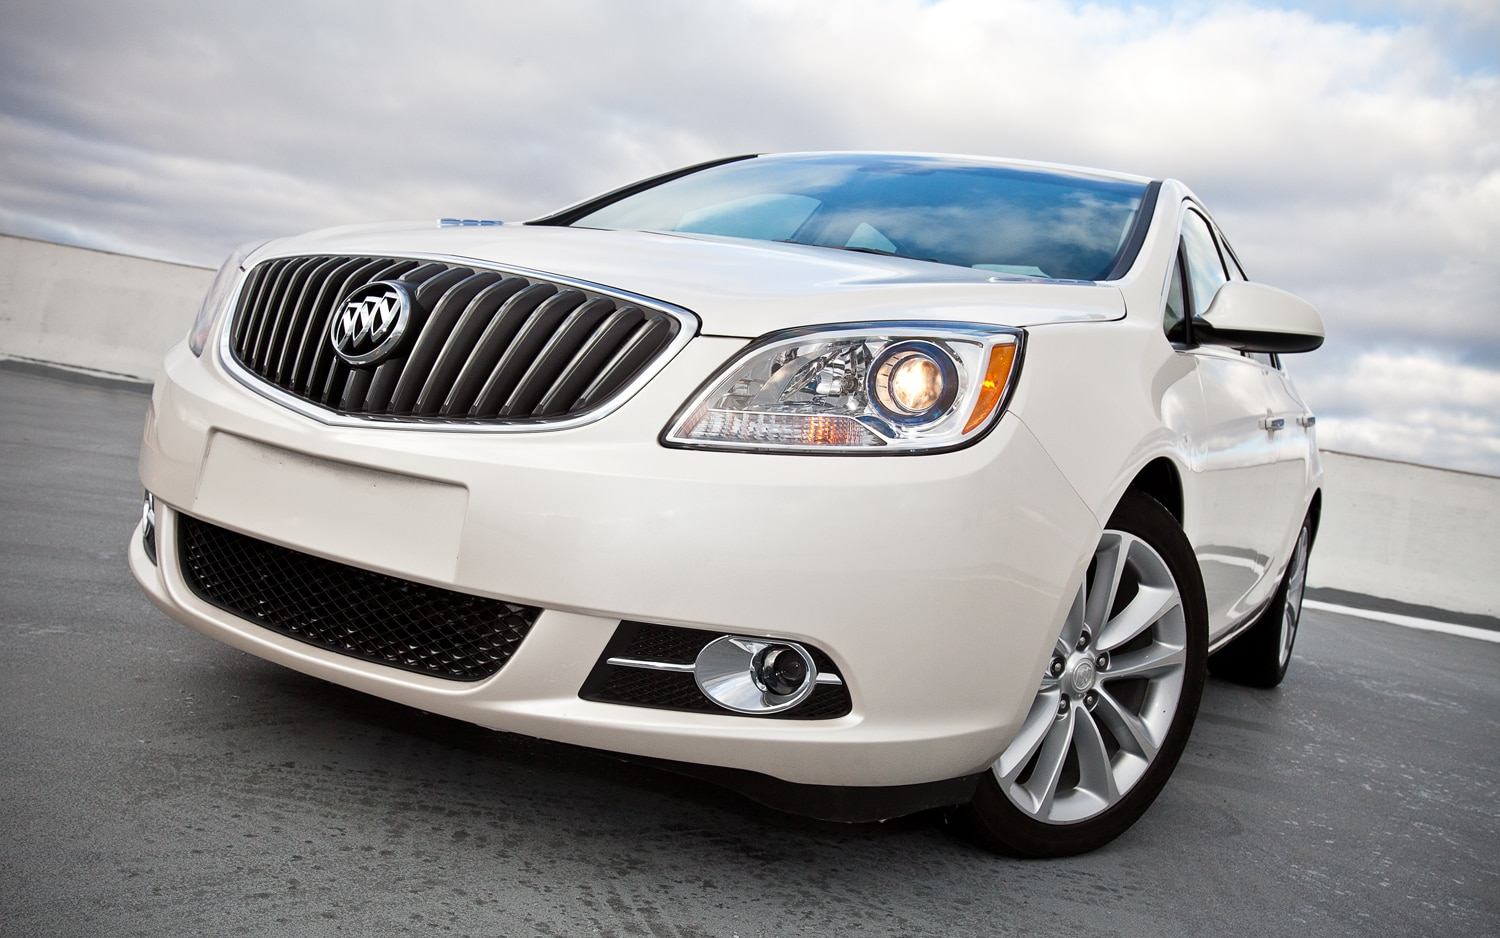 buick verano canceled for u s after 2017 says report automobile magazine. Black Bedroom Furniture Sets. Home Design Ideas